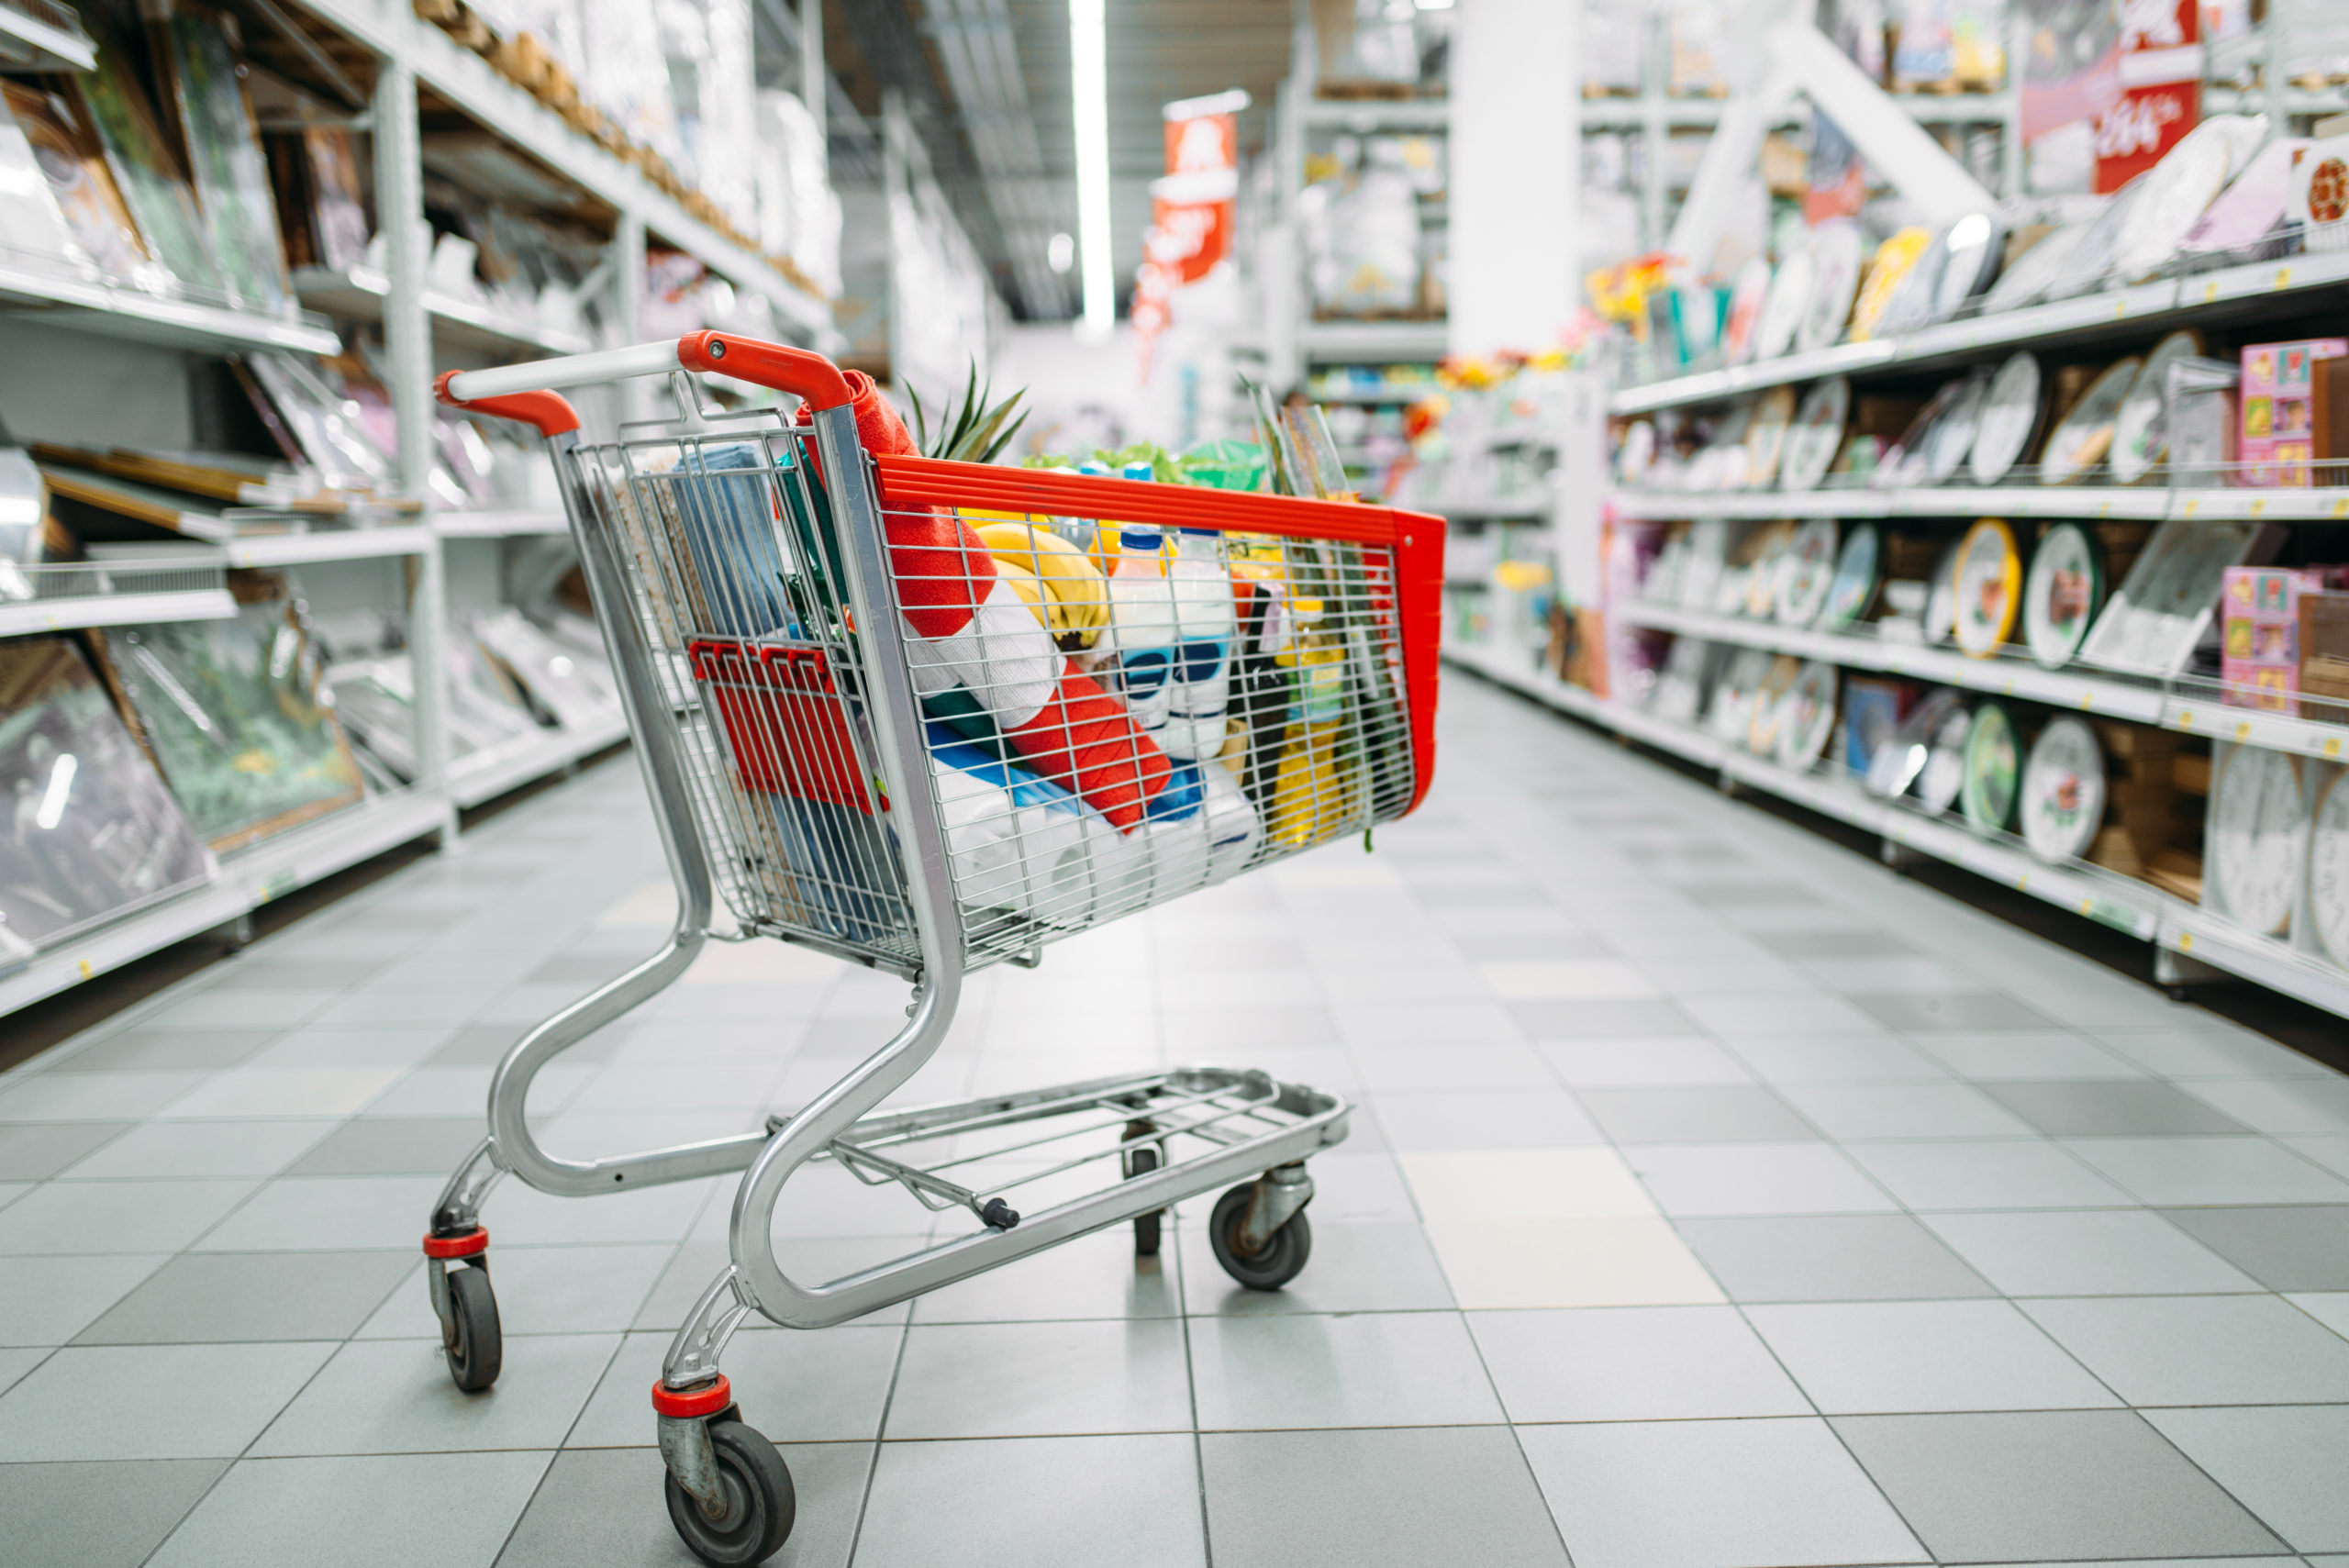 cart-full-of-goods-in-supermarket-nobody-753FXJA-scaled Front Page